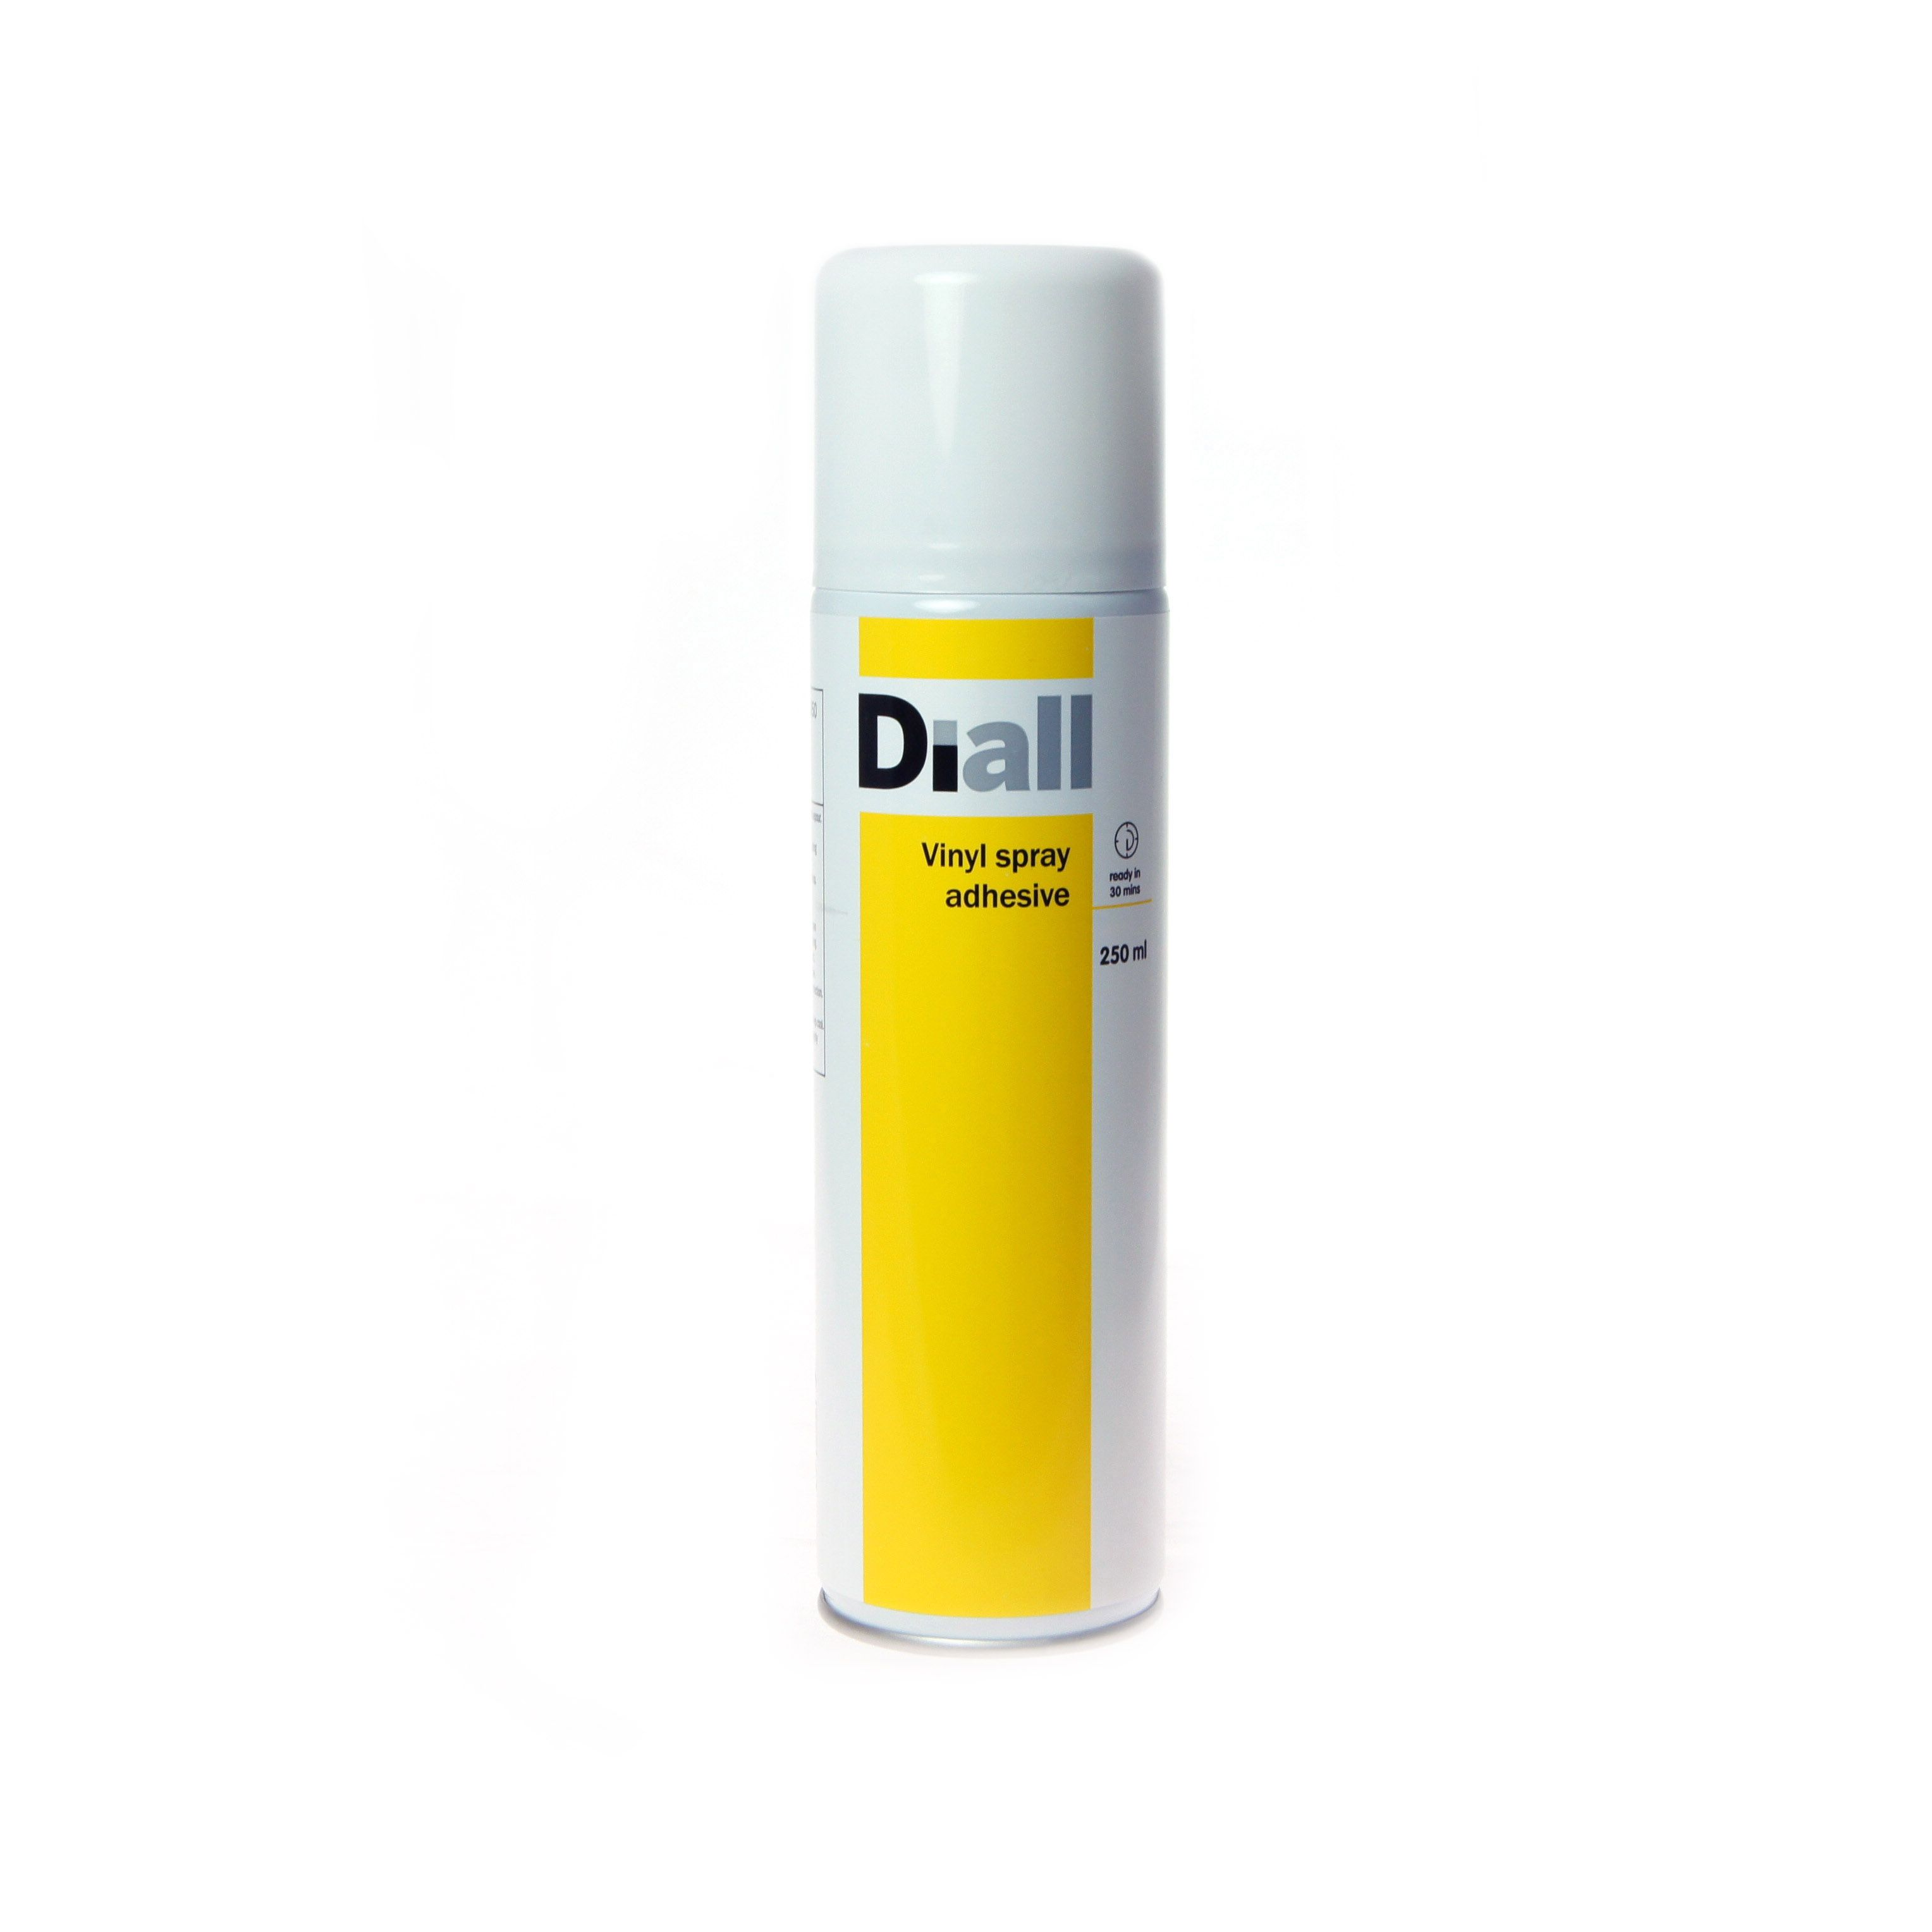 Diall Vinyl flooring spray adhesive, 250 ml | Departments | DIY at B&Q